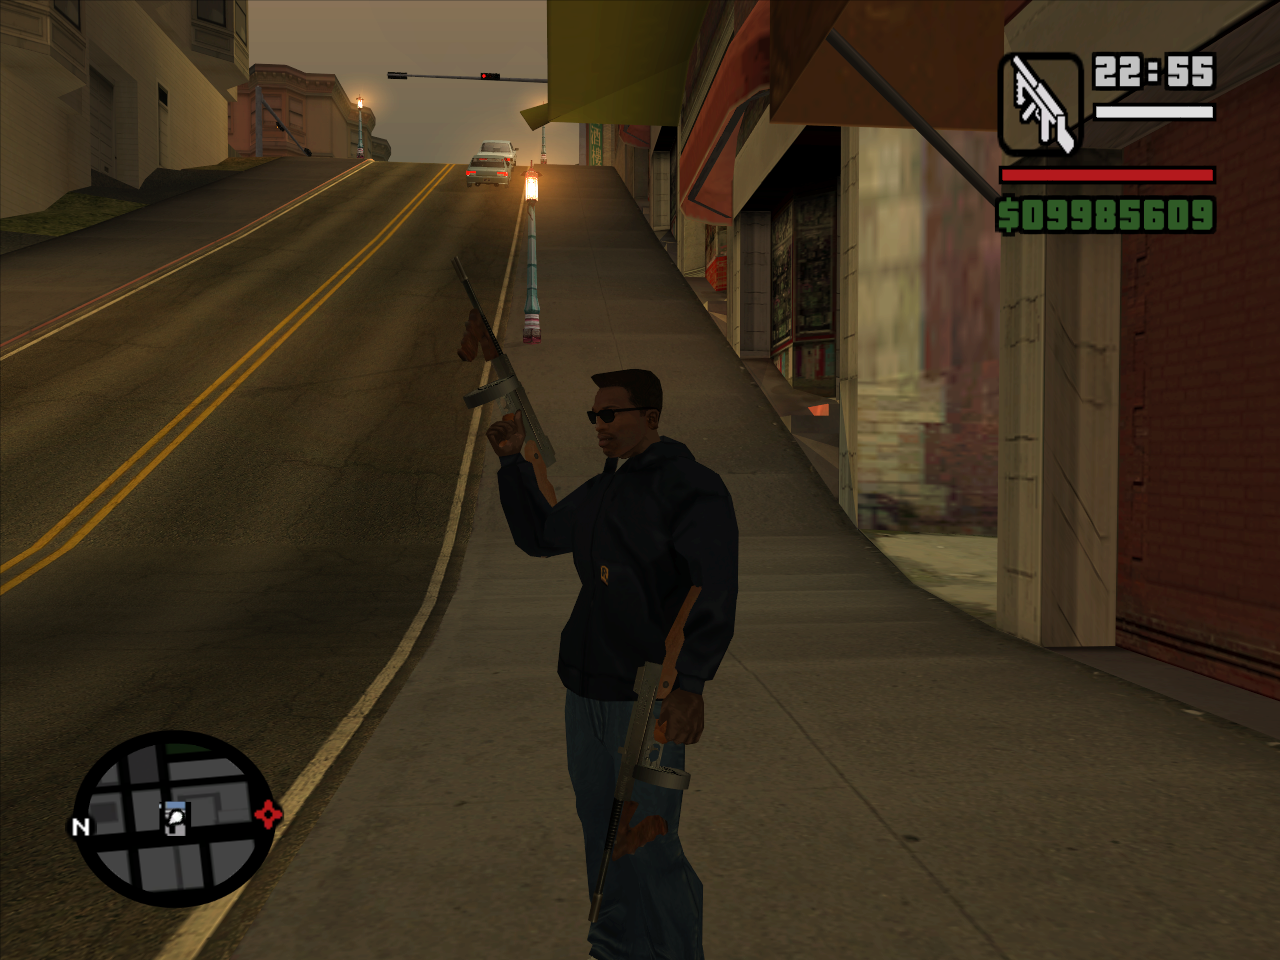 The gta place - grand theft auto news, forums, information